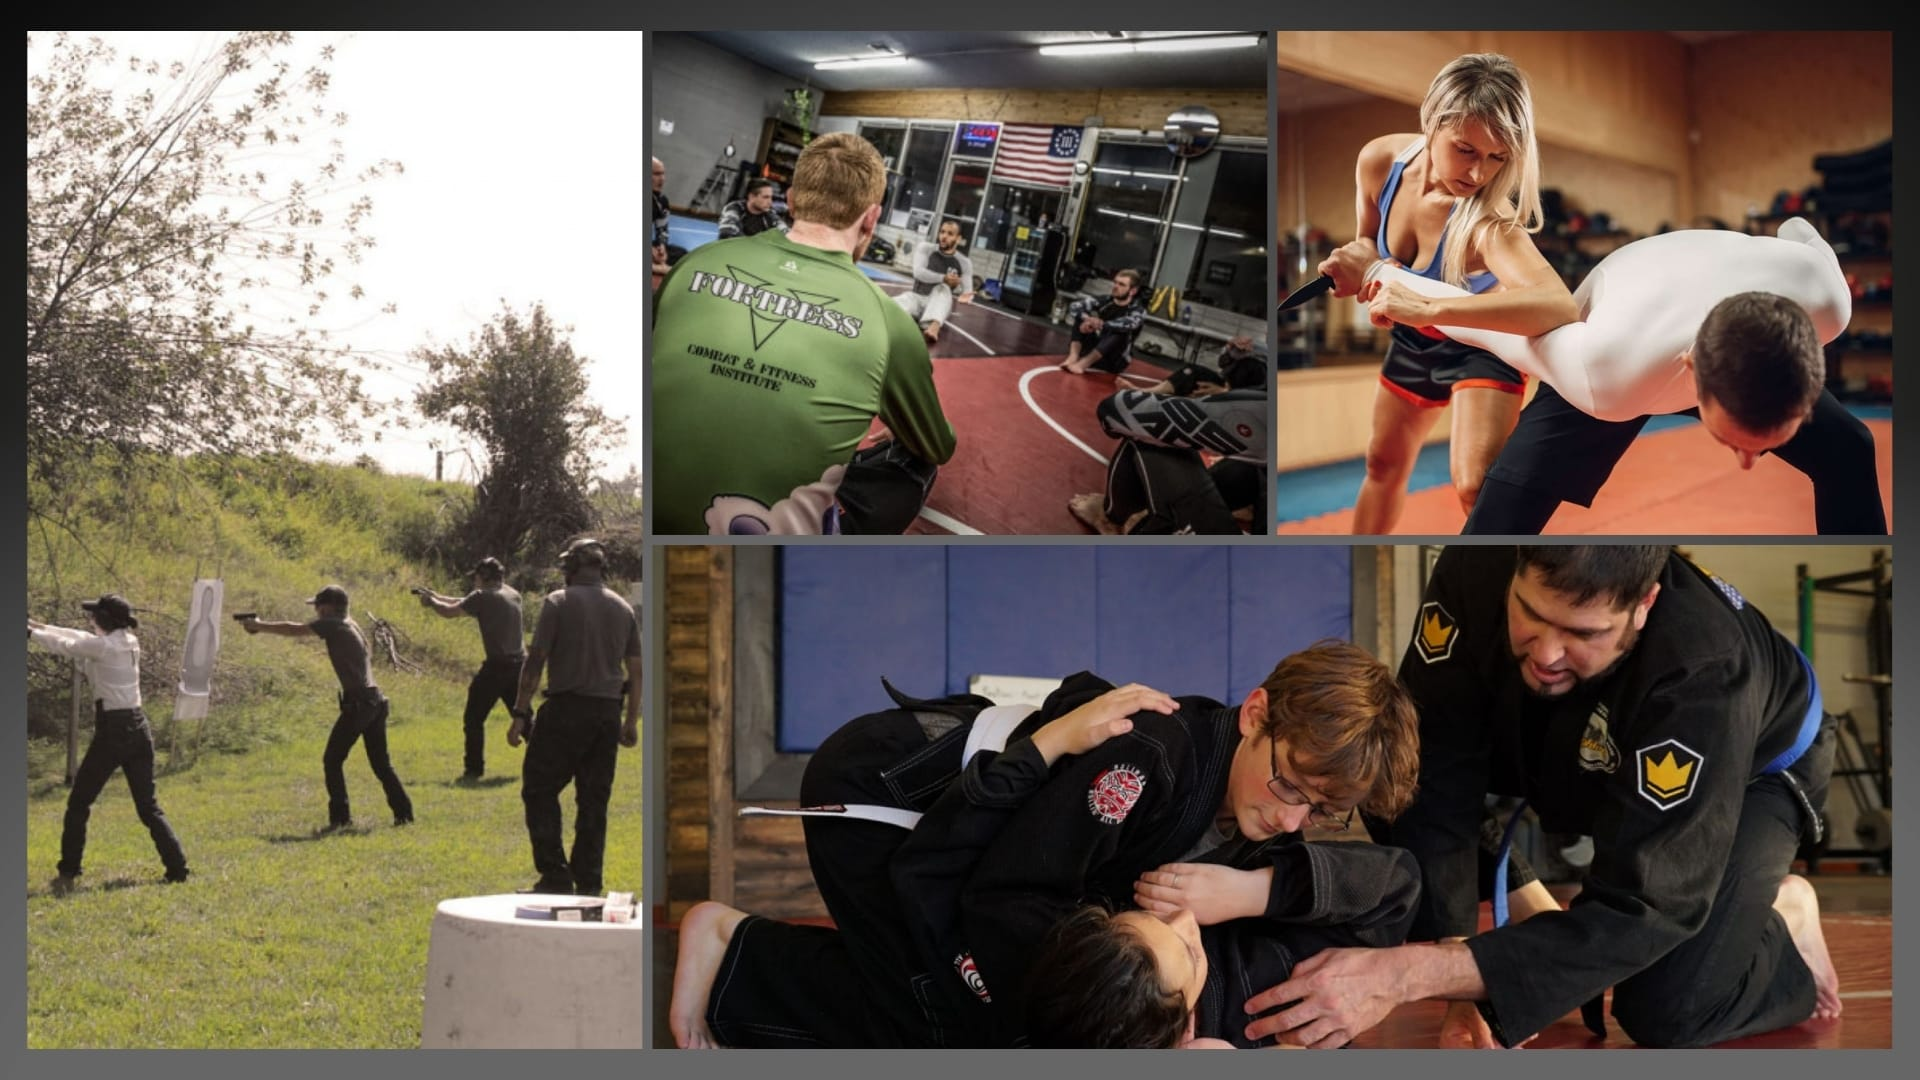 <style> h1 {   text-shadow: 2px 2px 8px #1e2a55; } </style>Premier Self Defense and Martial Arts Training in Bozeman